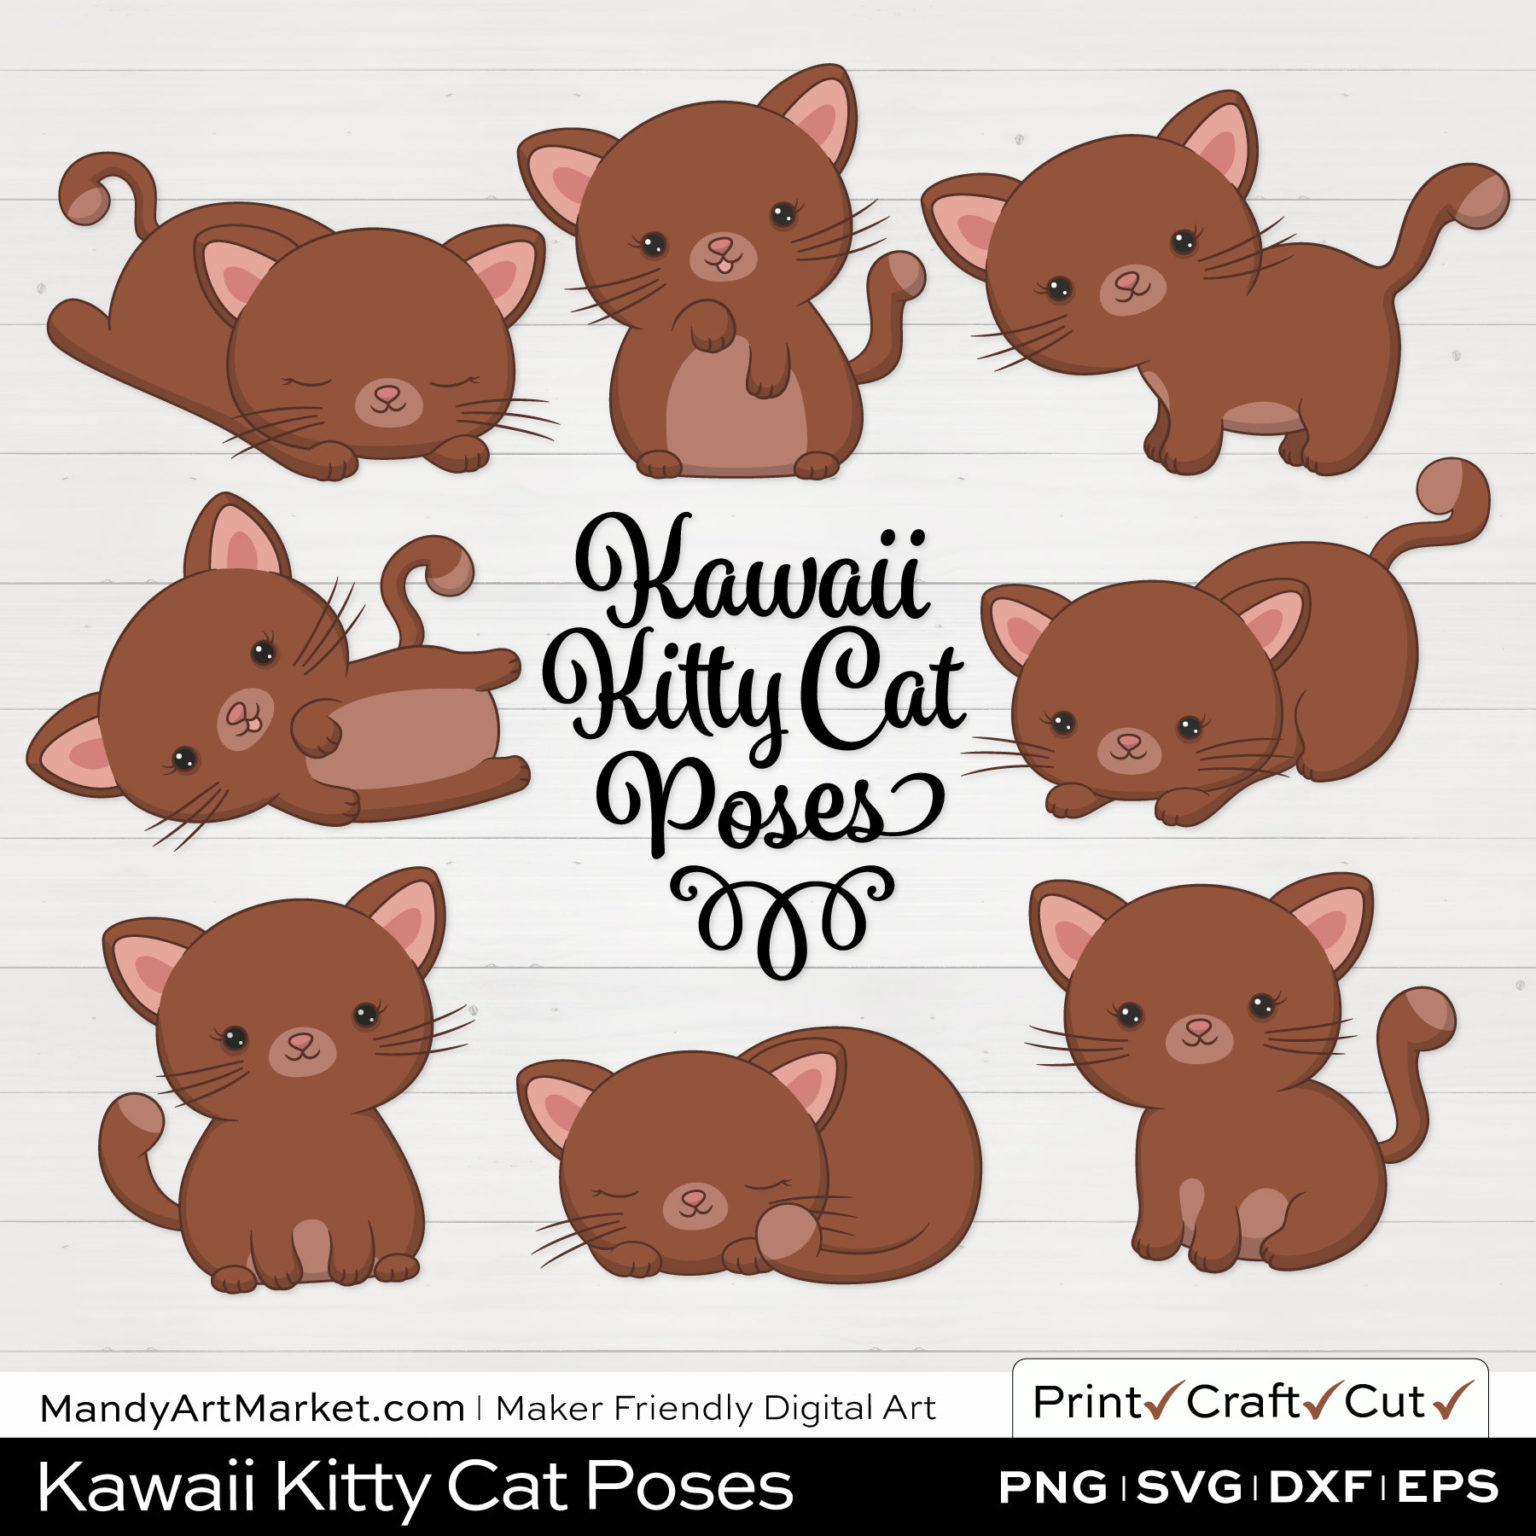 Umber Brown Kawaii Kitty Cat Poses Clipart on White Background